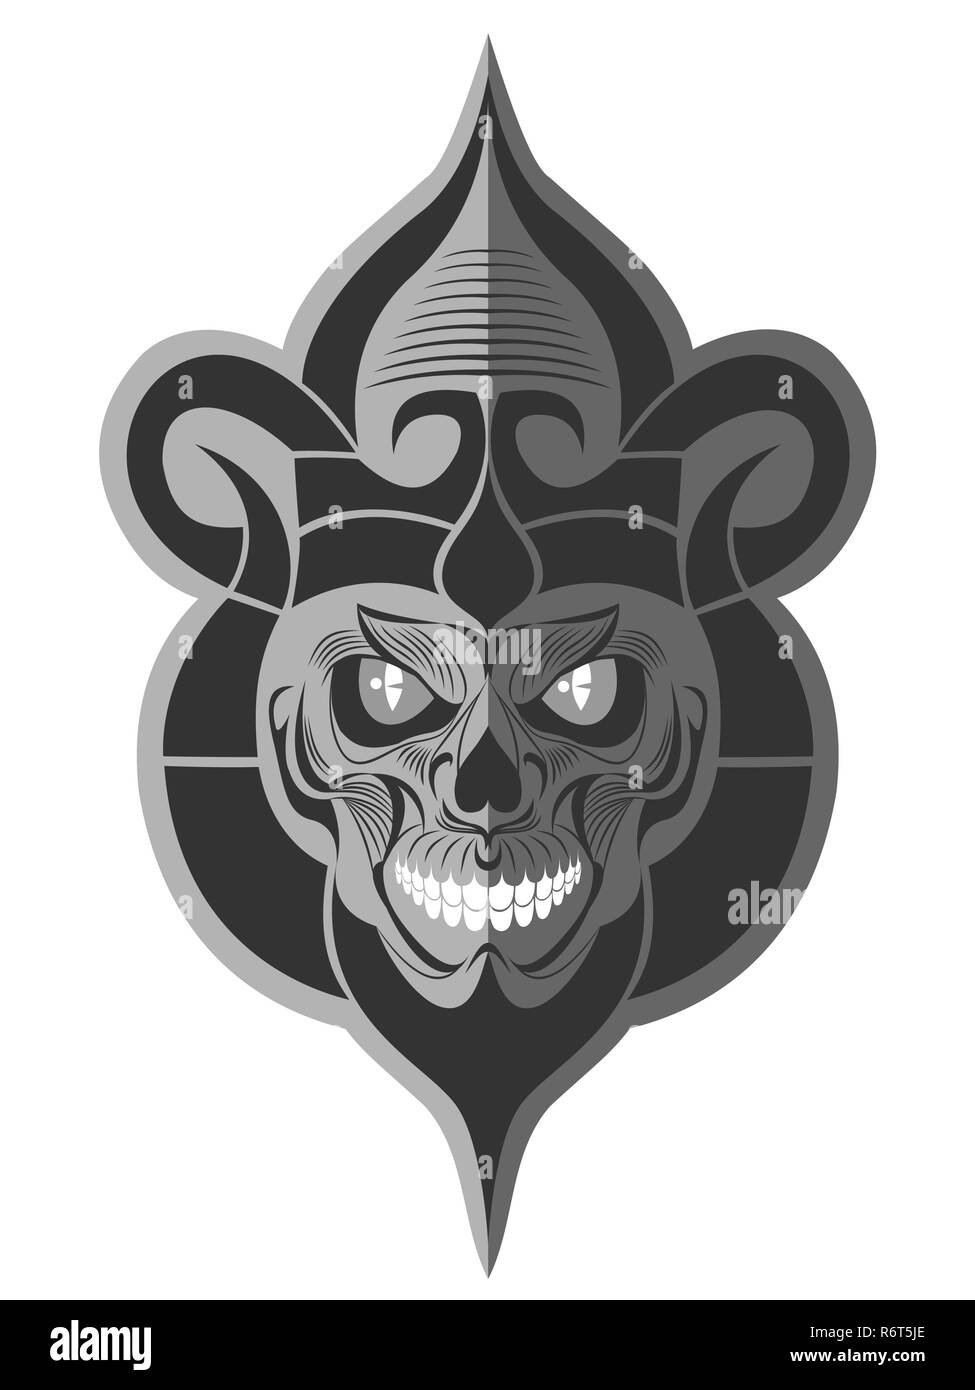 Decorative black and white evil mouse skull with white teeth flat paper memorable art for sticker, tattoo or t-shirt printing - Stock Image